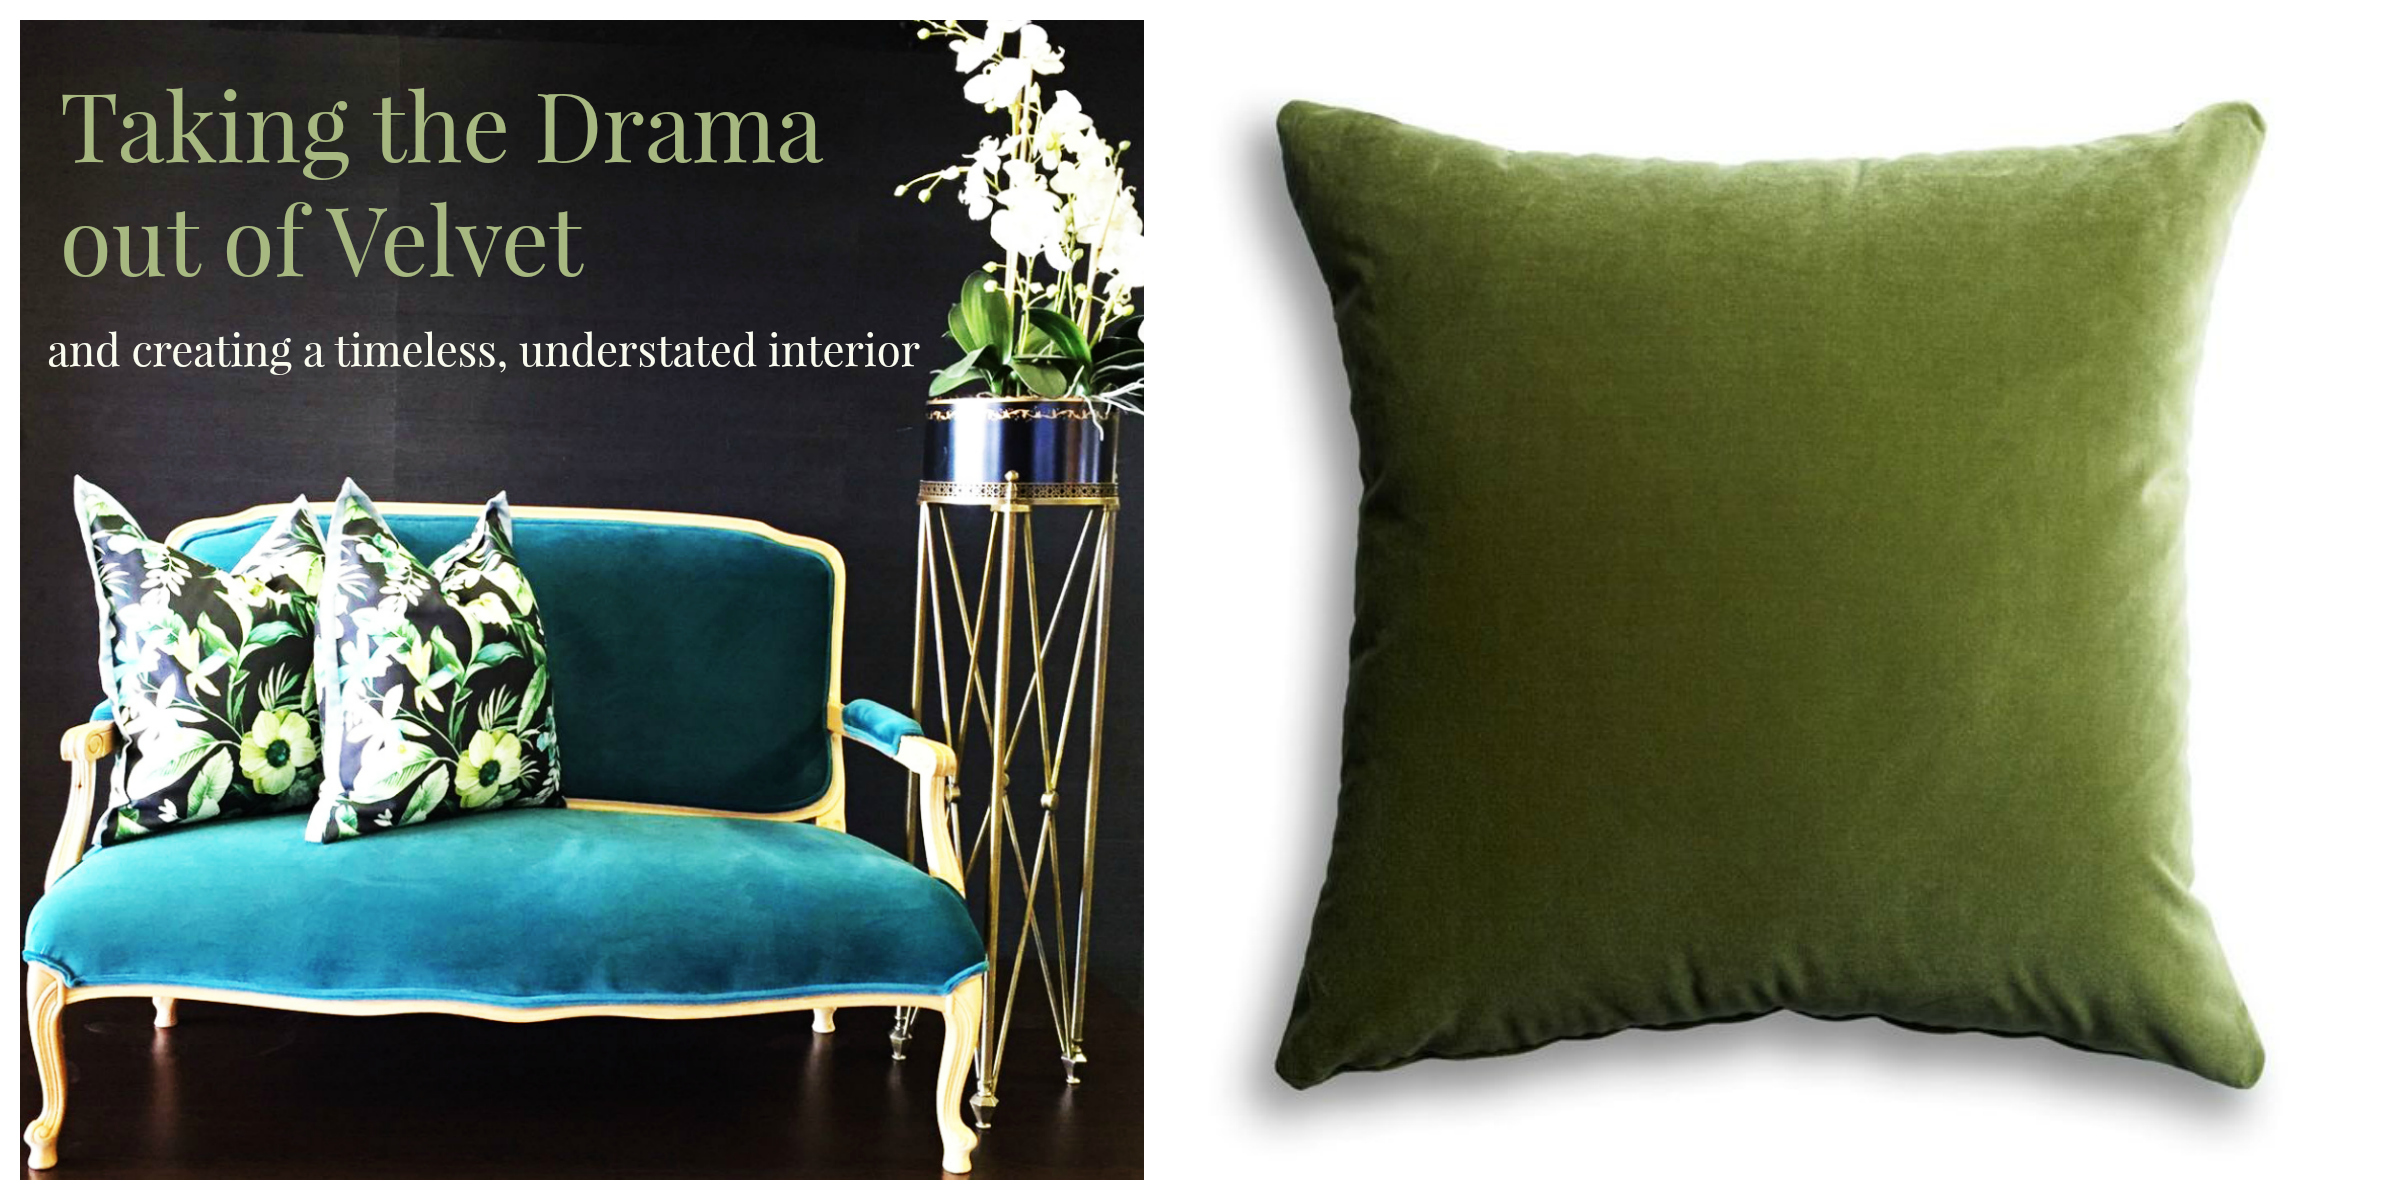 Sofa upholstered in U&G Fabrics' Legacy and a green velvet scatter with feather inner from the   Tassels & Tigers decor collection.